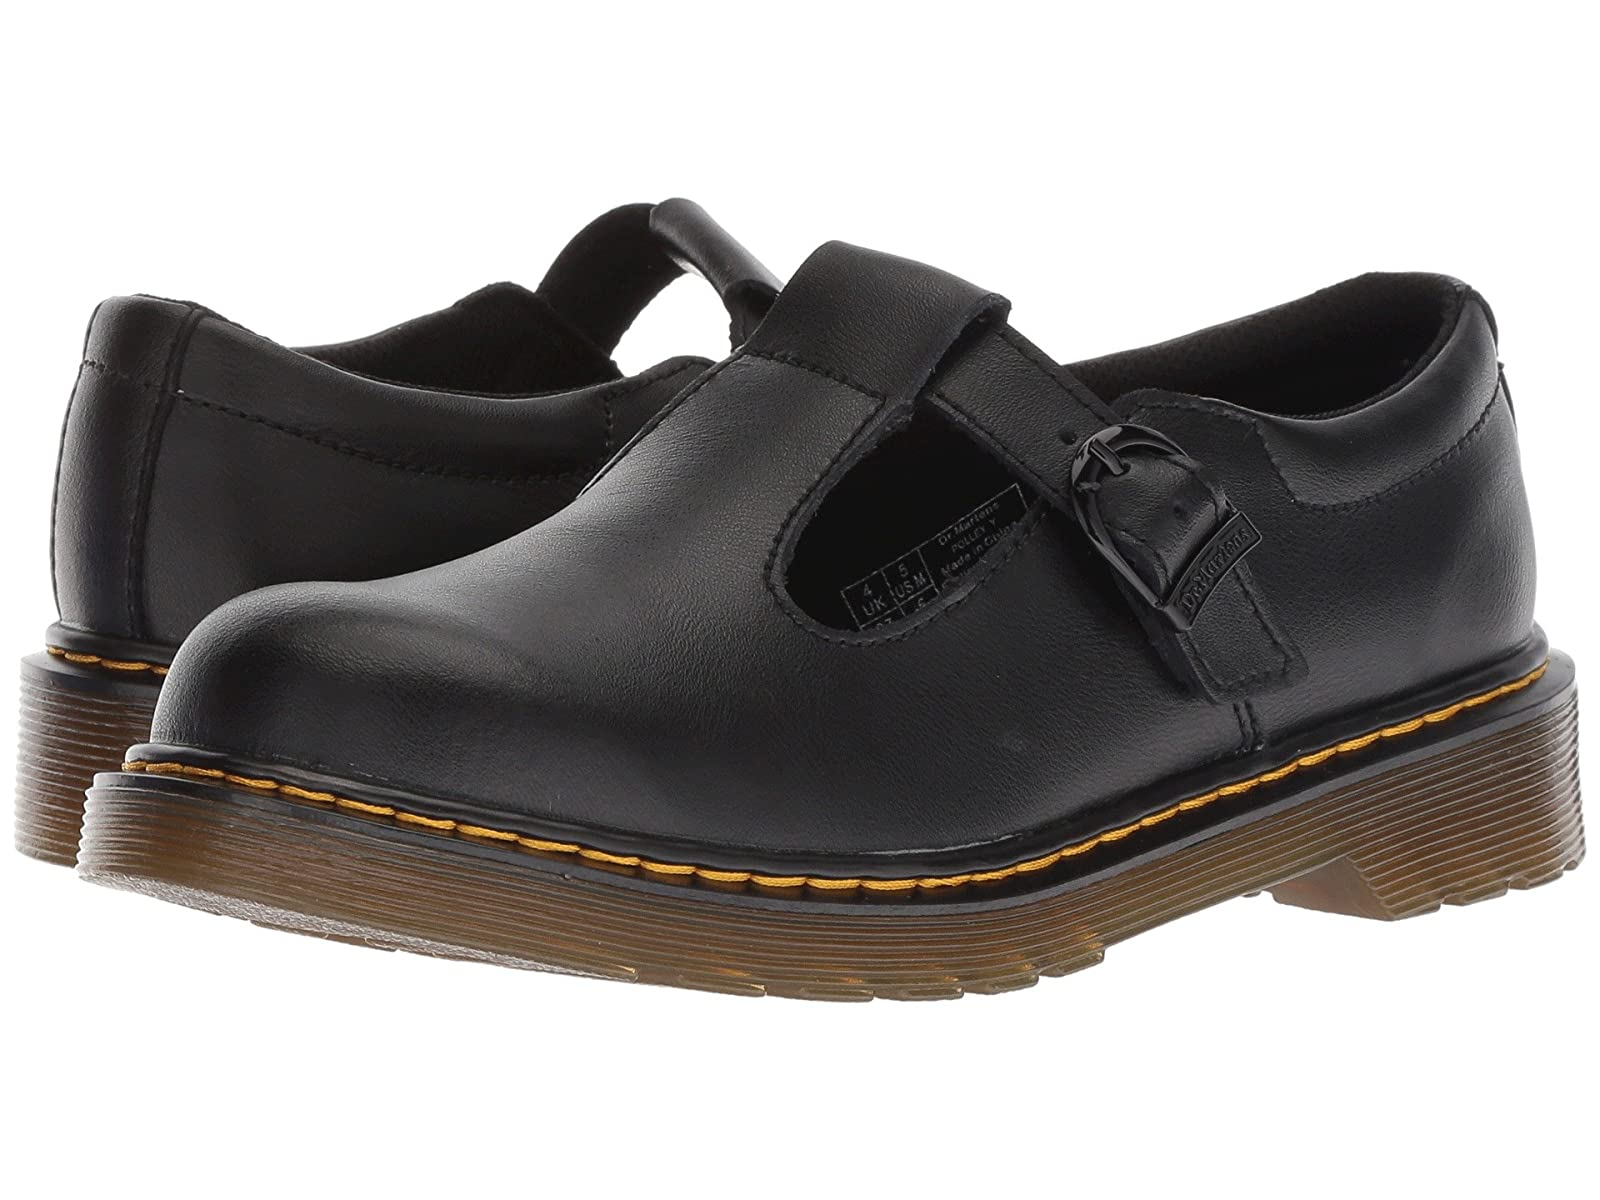 Dr. Martens Kid's Collection Polley (Big Kid)Atmospheric grades have affordable shoes